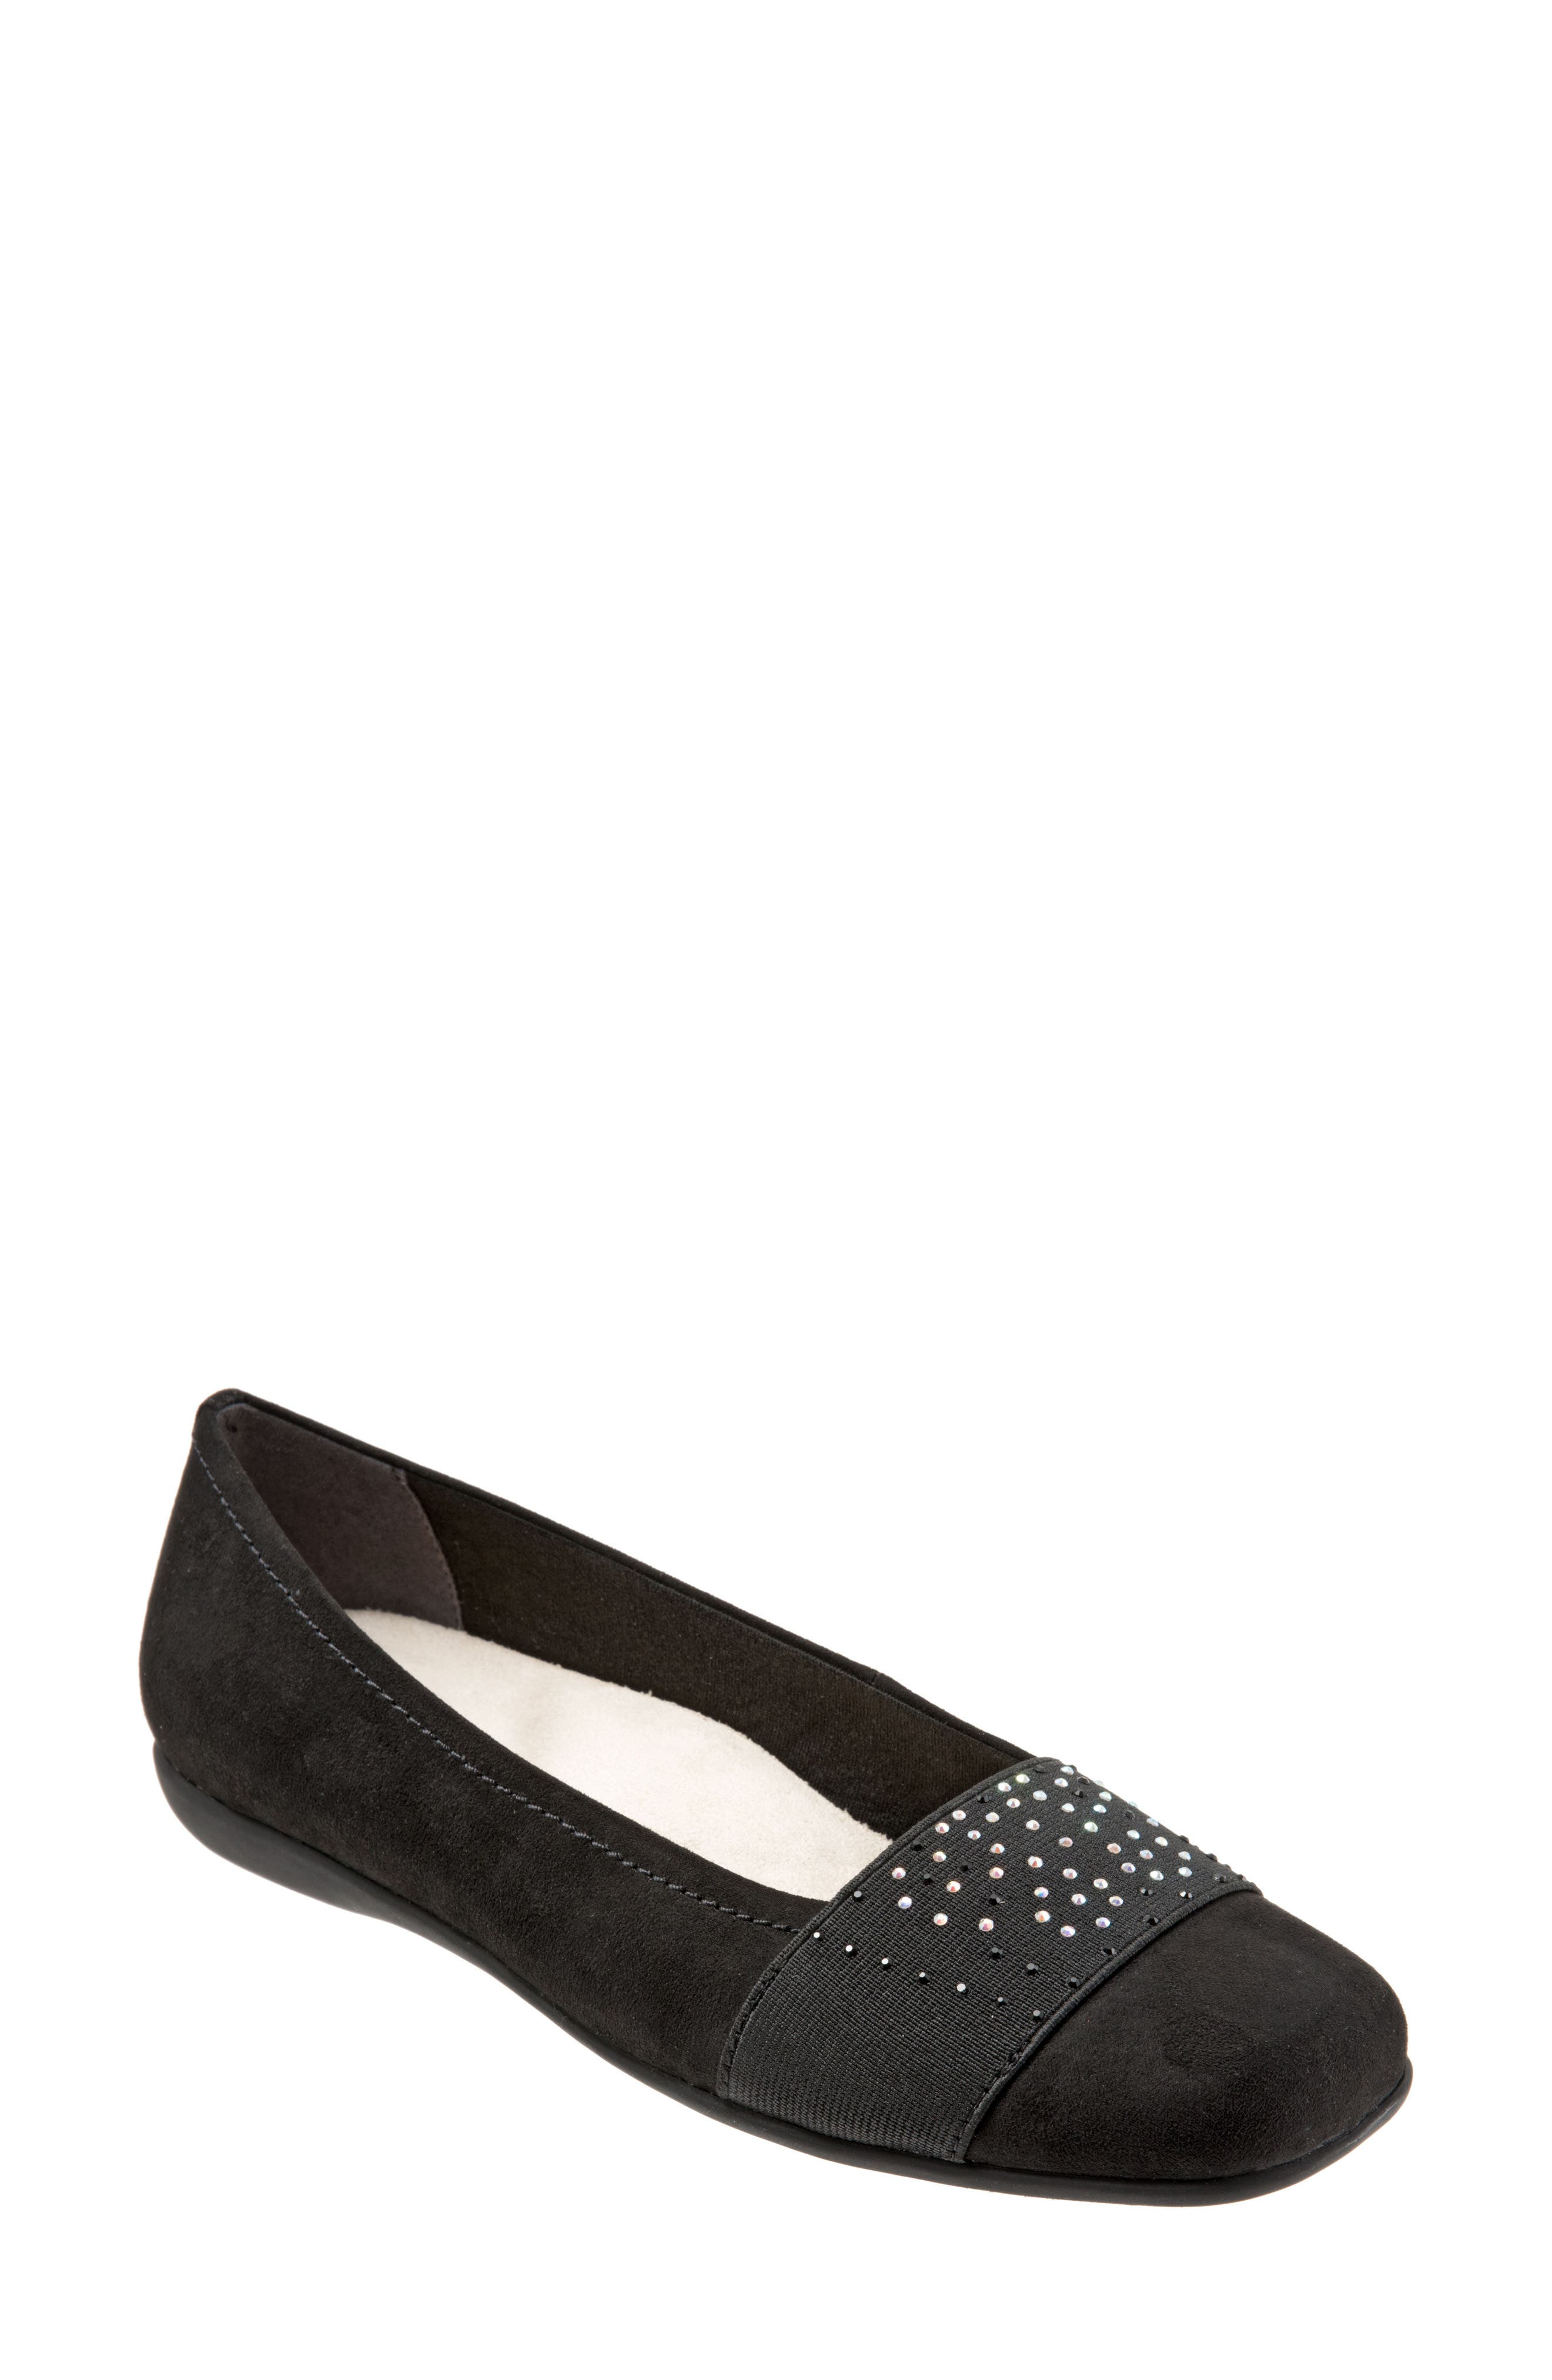 TROTTERS,                             Samantha Flat,                             Main thumbnail 1, color,                             BLACK SUEDE